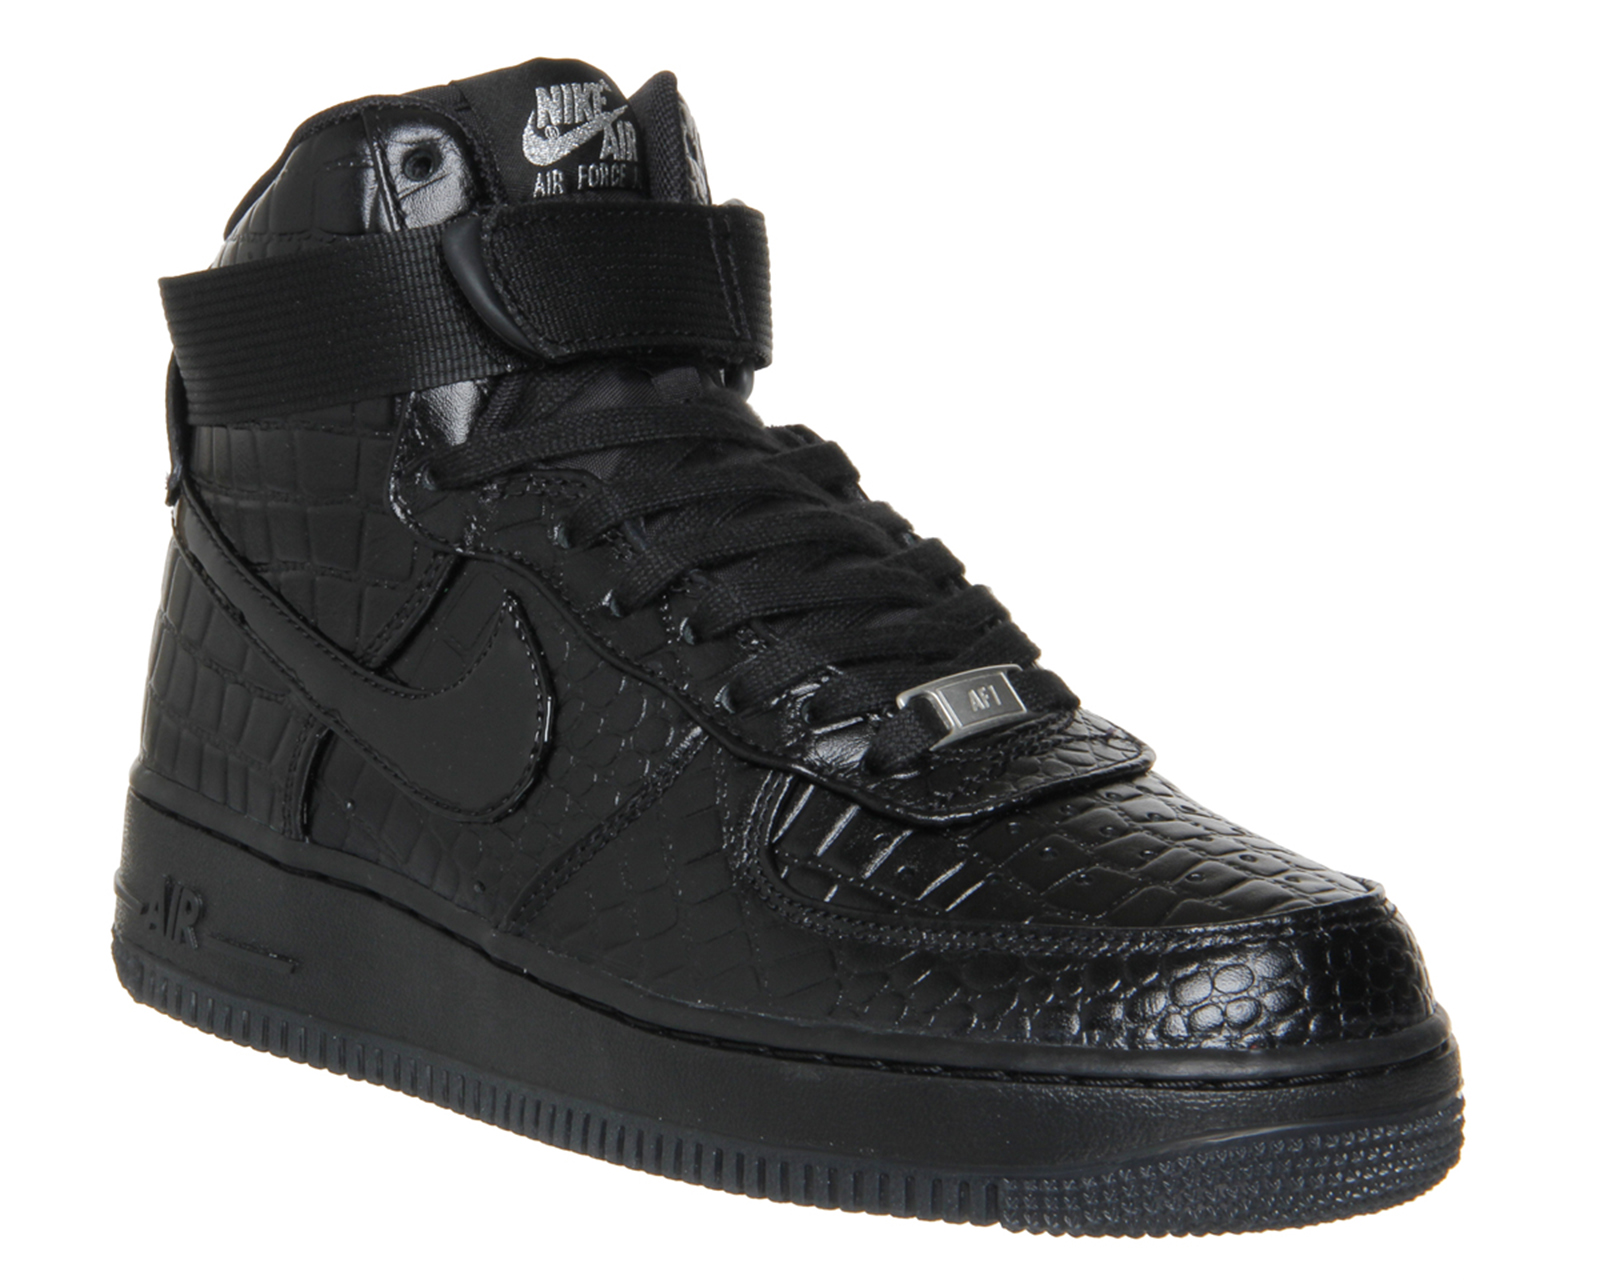 nike air force 1 womens high black white navy blue